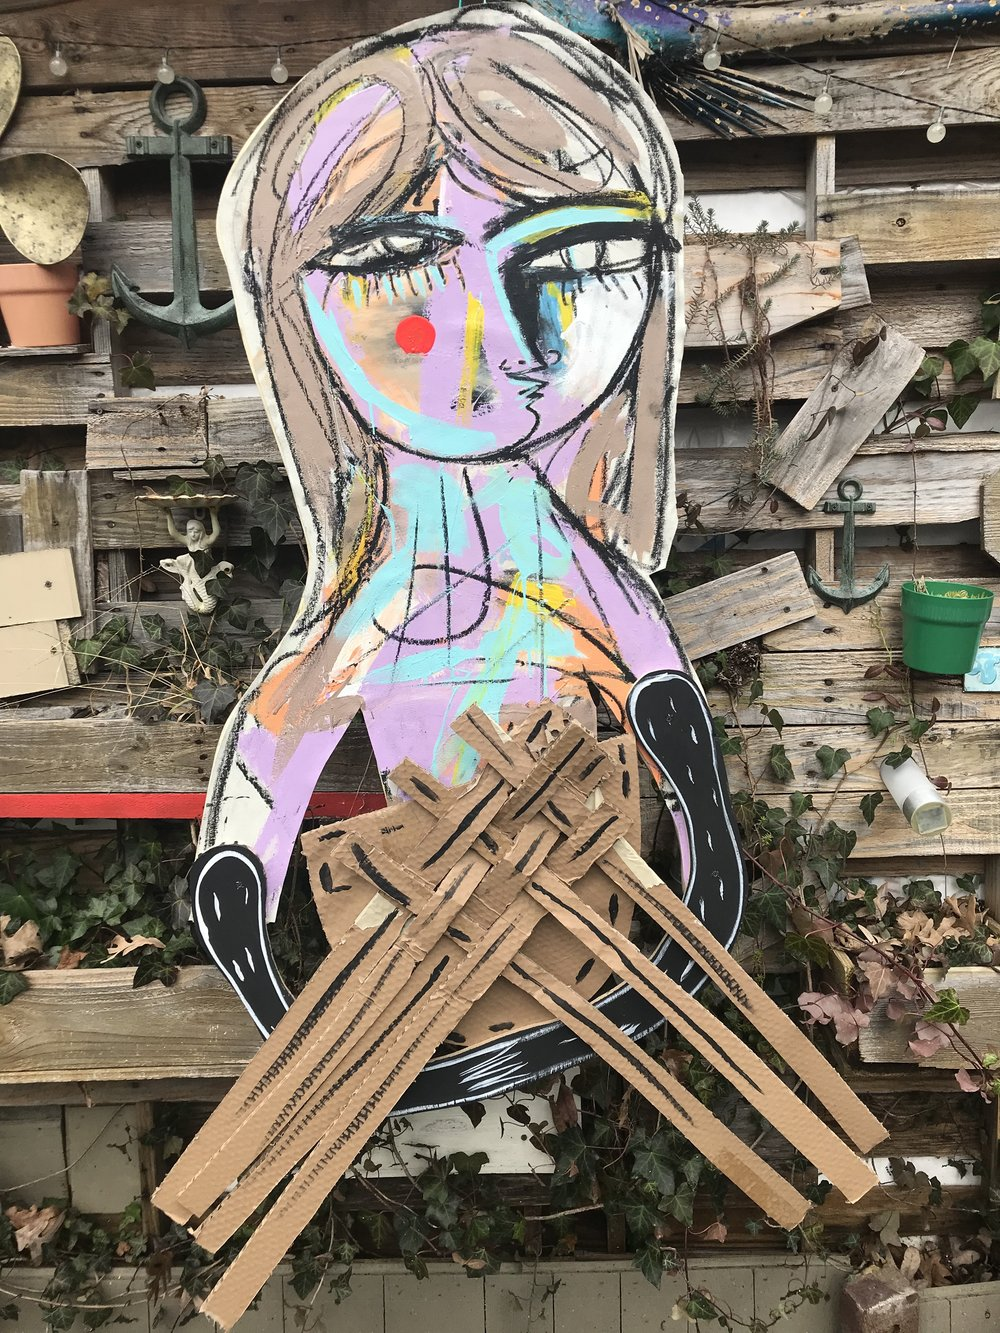 STREET ARTIST 3, CANVAS OVER WOOD CUTOUT WITH CARDBOARD